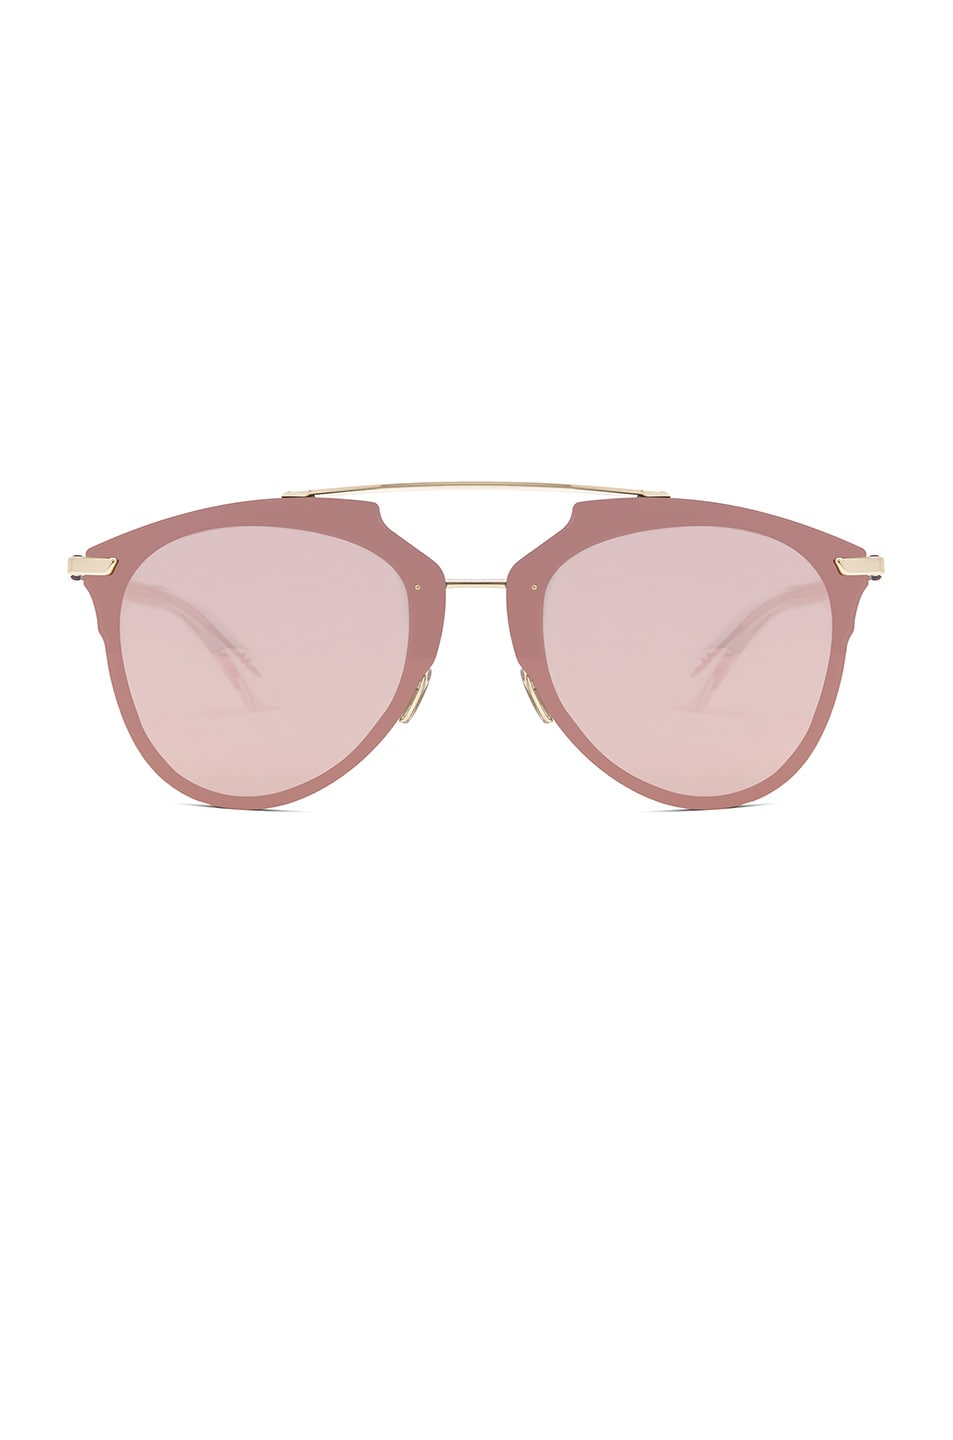 DIOR REFLECTED SUNGLASSES IN METALLICS